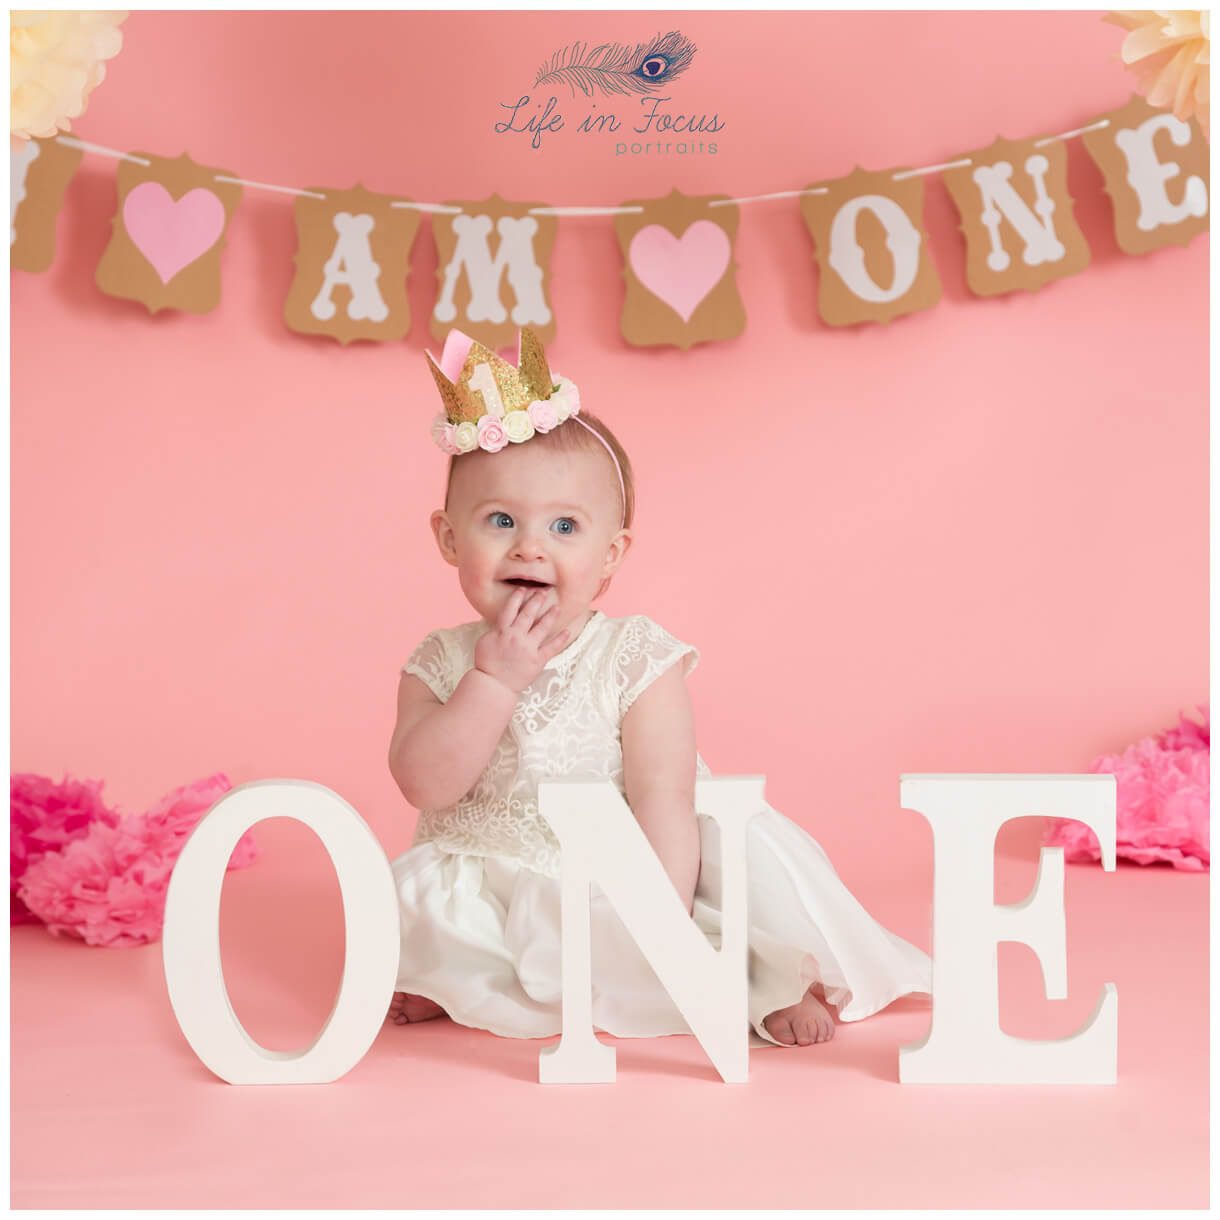 cute photo of baby gorl 1st Birthday photo shoot Rhu Life in Focus Portriats baby photography studio Helensburgh